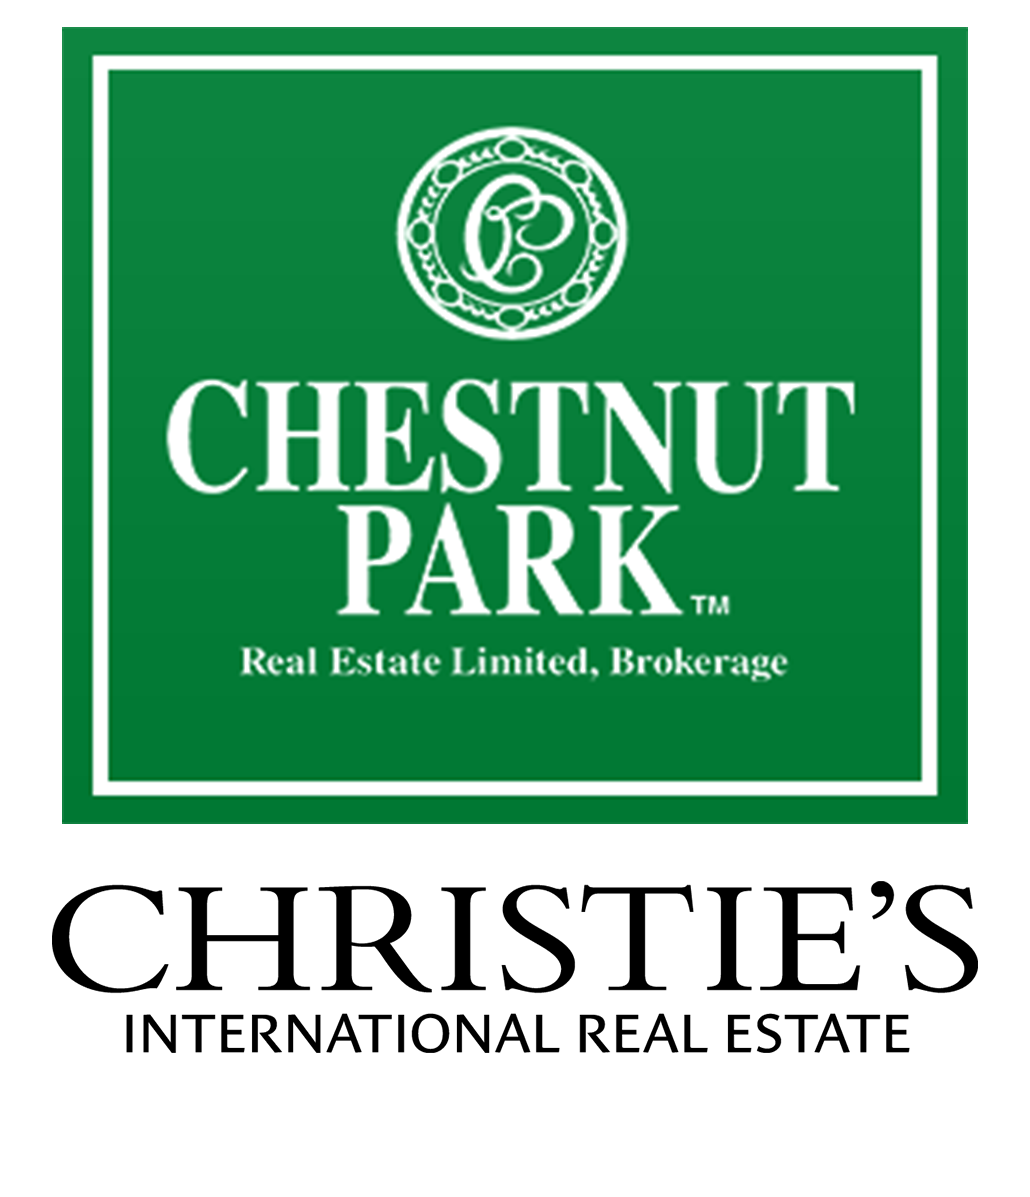 chestnut park green